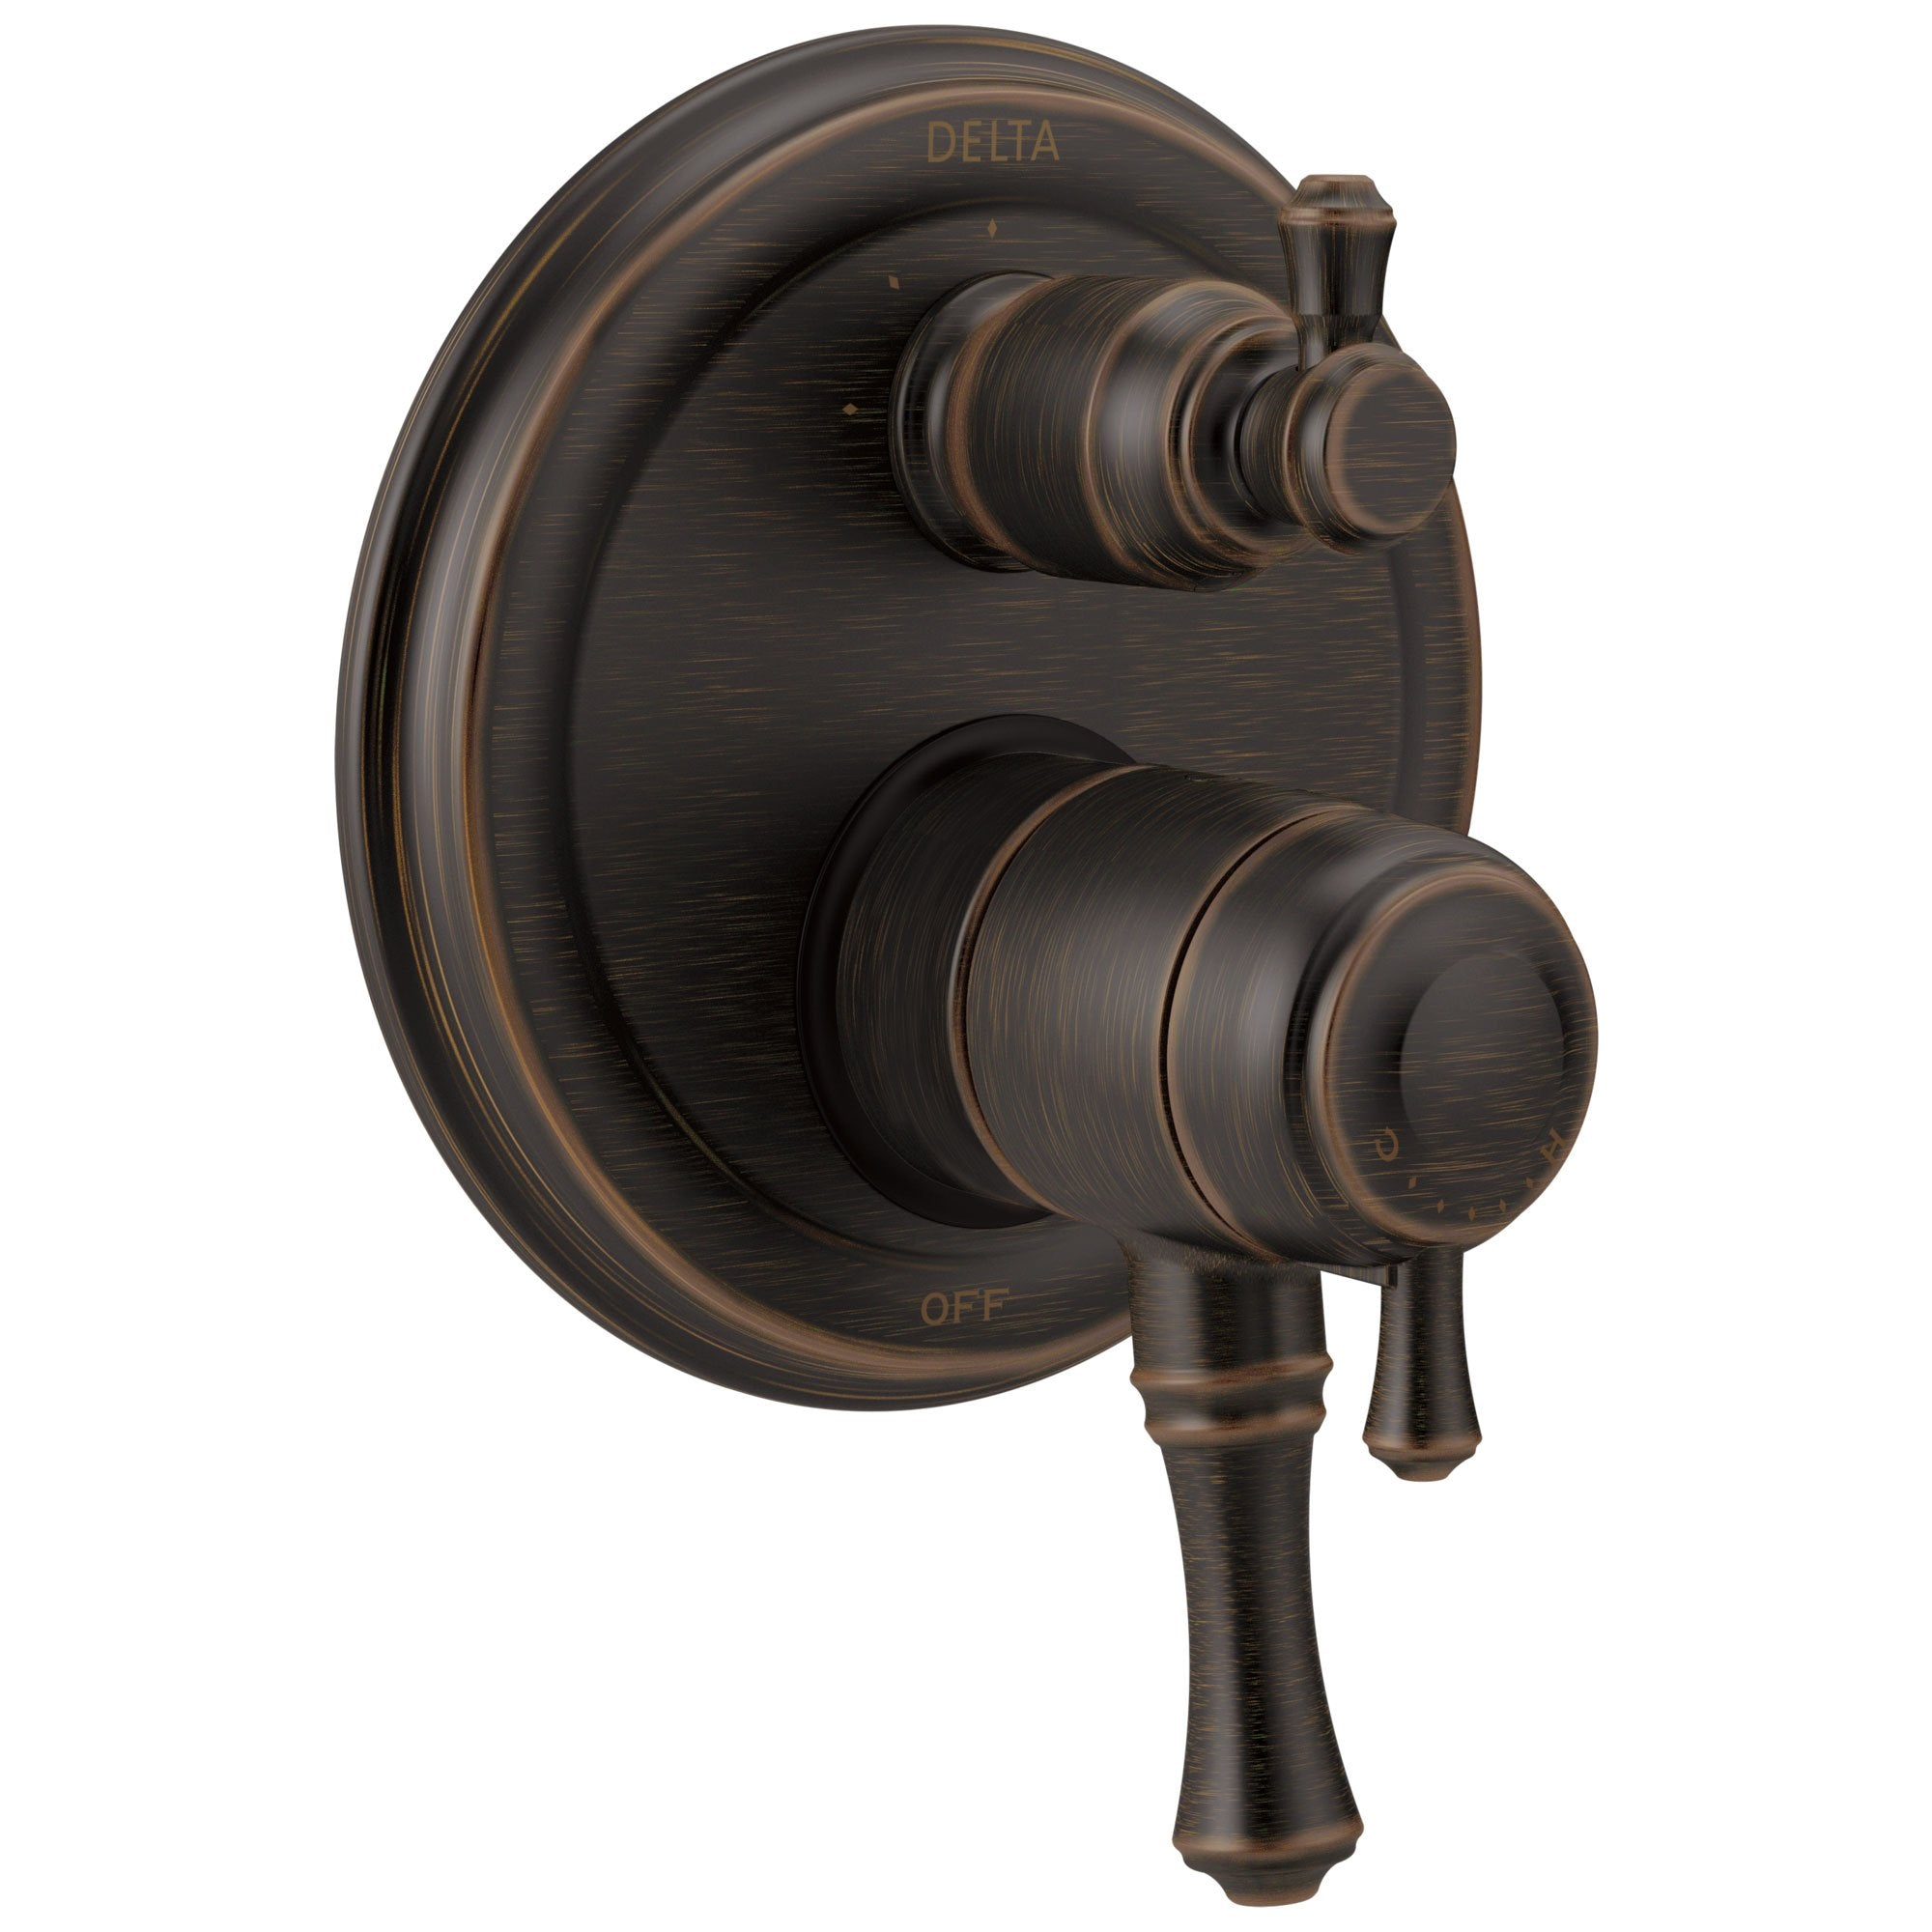 Delta Cassidy Venetian Bronze Traditional Shower Faucet Control Handle with 3-Setting Integrated Diverter Includes Trim Kit and Rough-in Valve with Stops D2166V